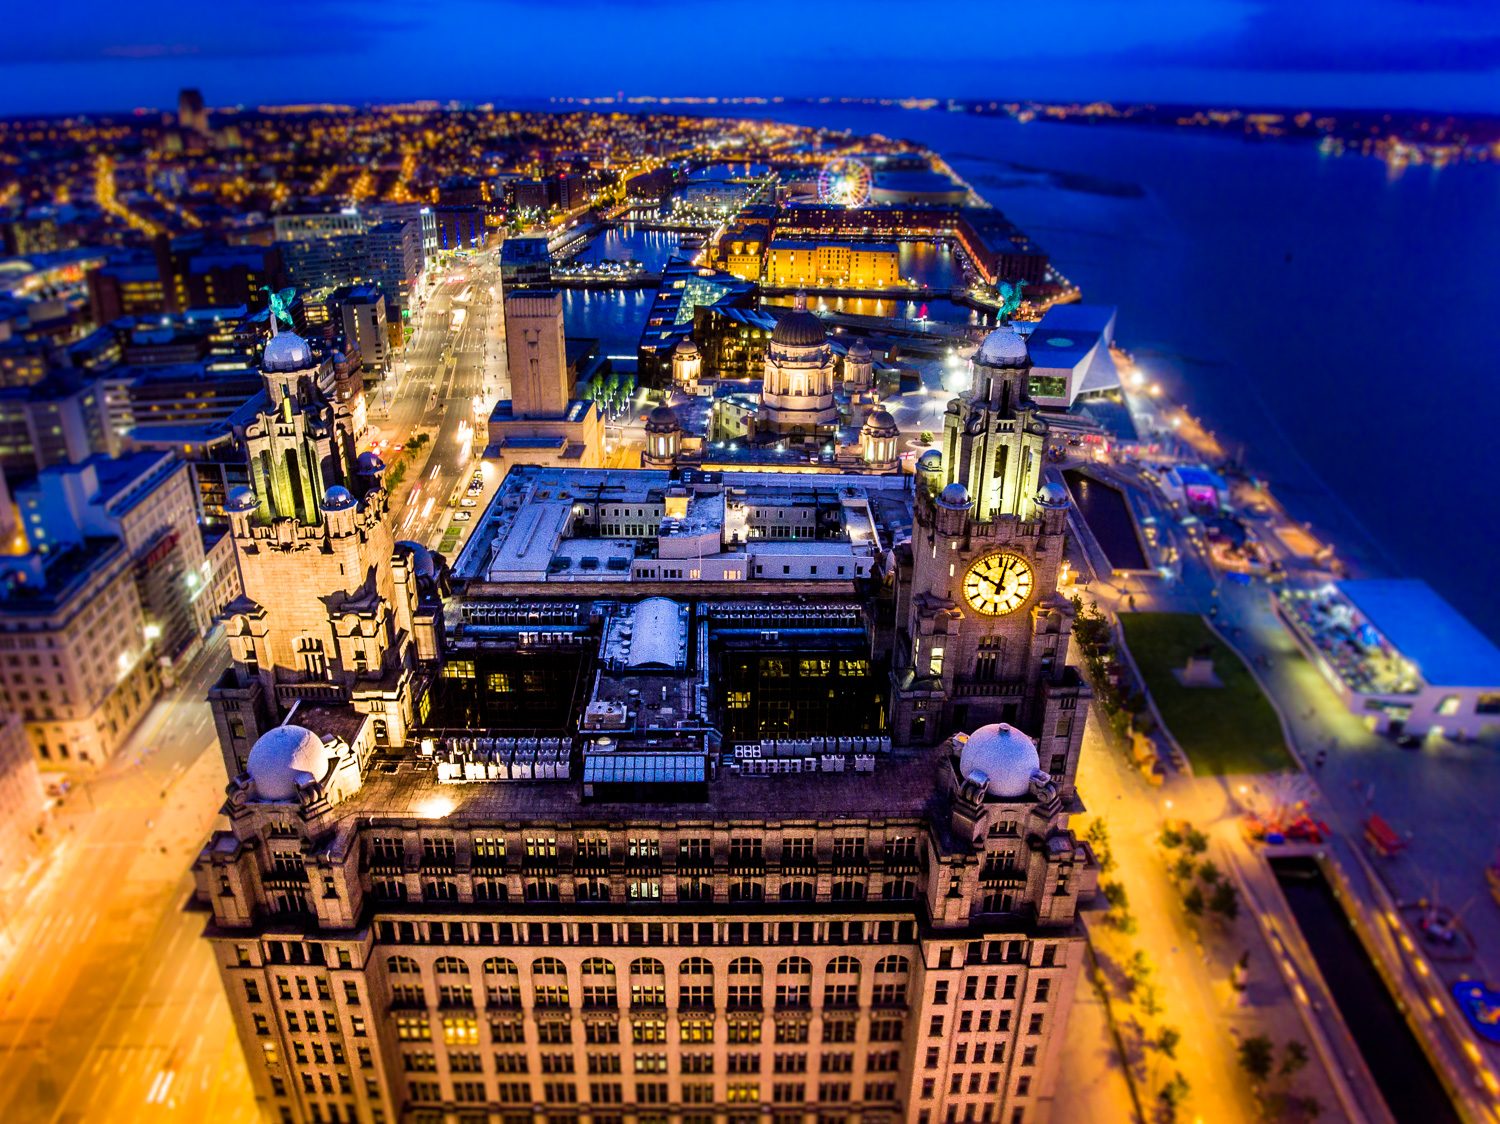 drone shot of the liver building liverpool waterfront photography